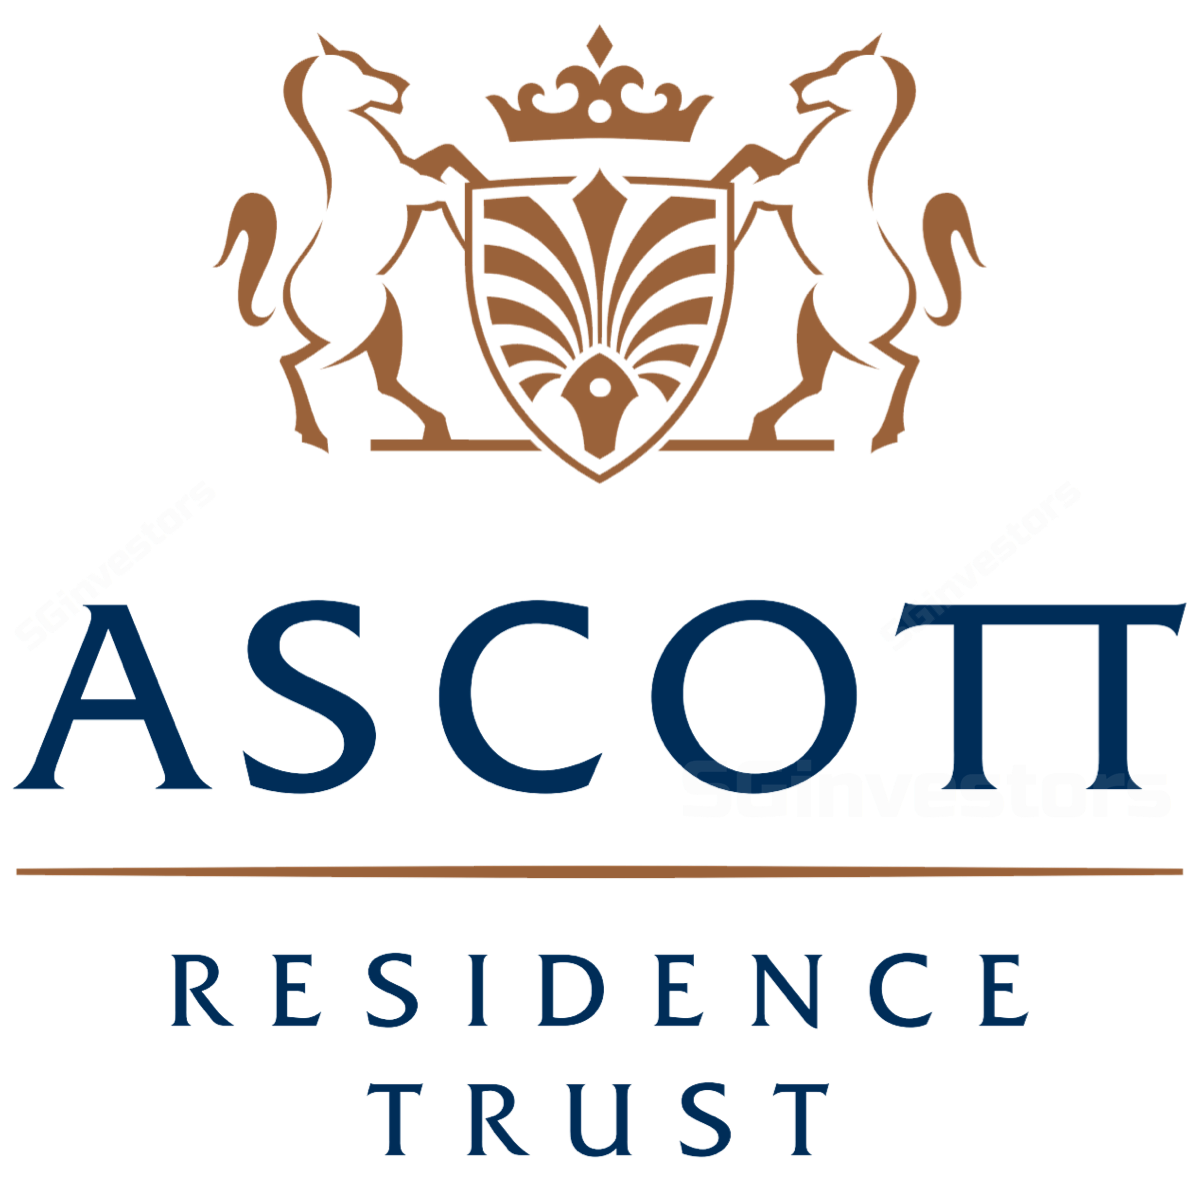 Ascott Residence Trust - CIMB Research 2018-04-18: 1Q18 Slight Miss; US Slips To Slight Losses